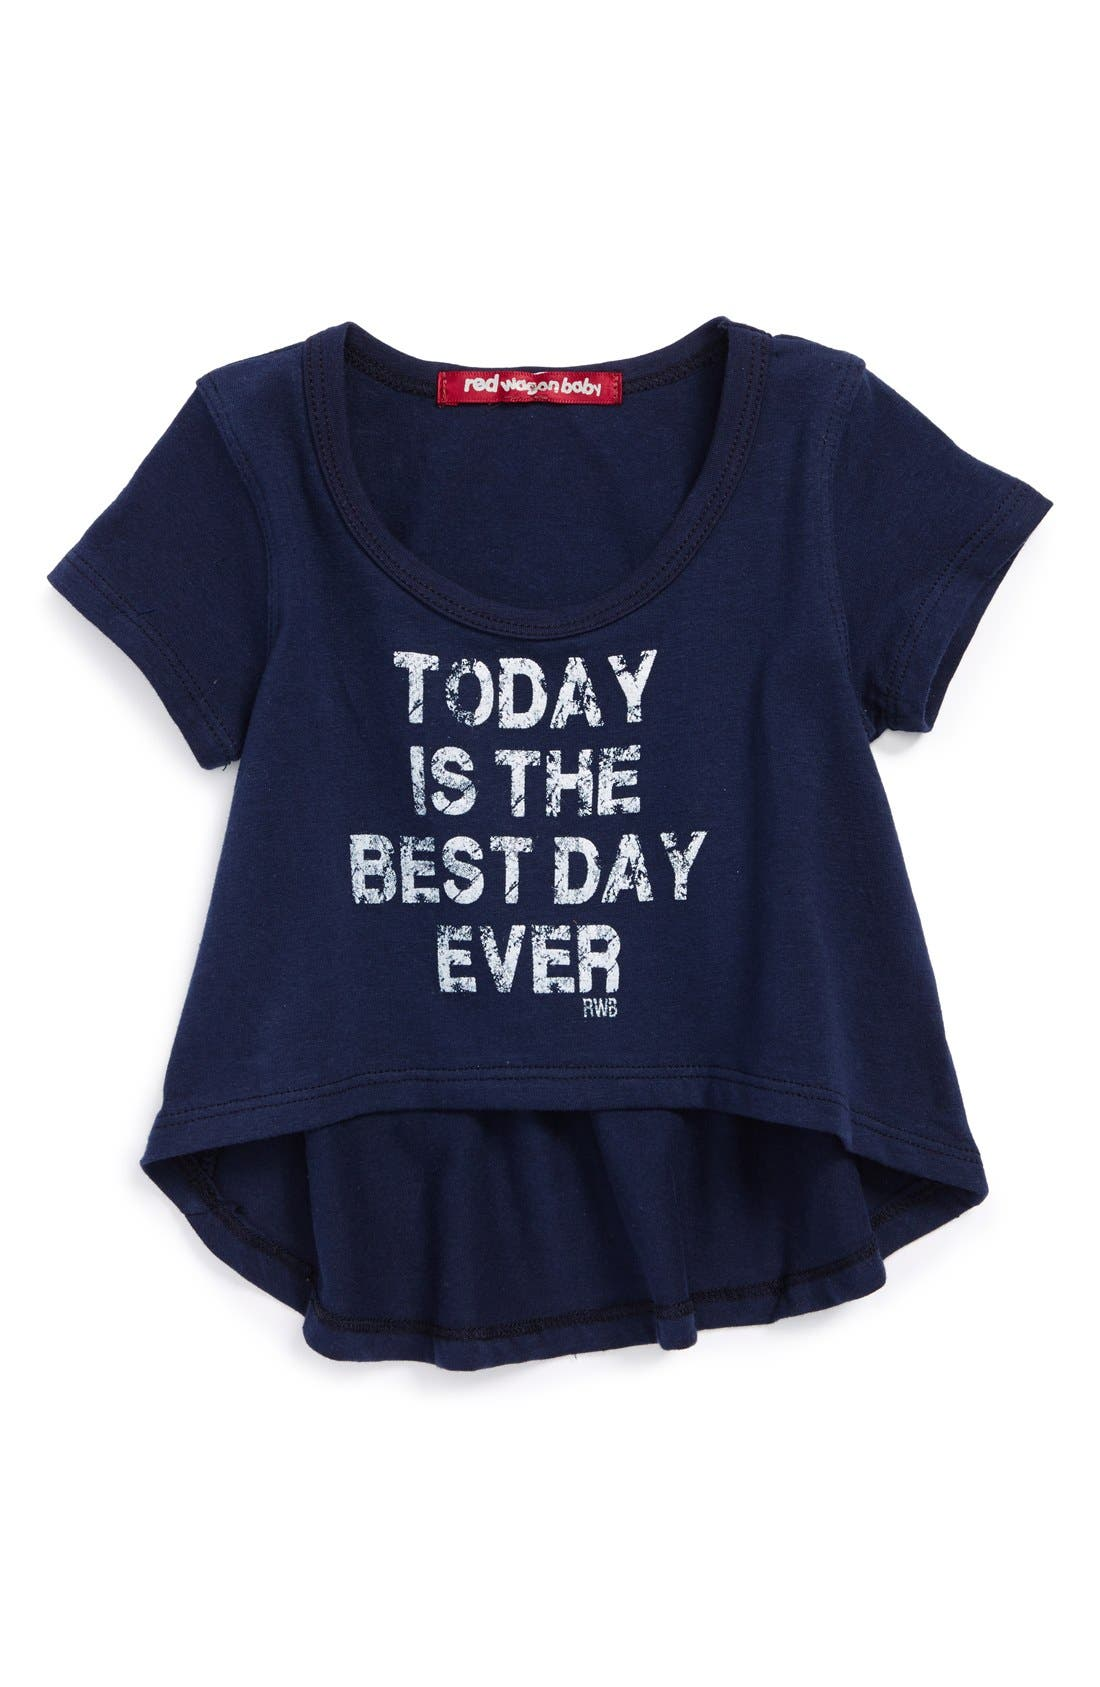 Alternate Image 1 Selected - Red Wagon Baby 'Today Is the Best Day Ever' High/Low Tee (Toddler Girls)